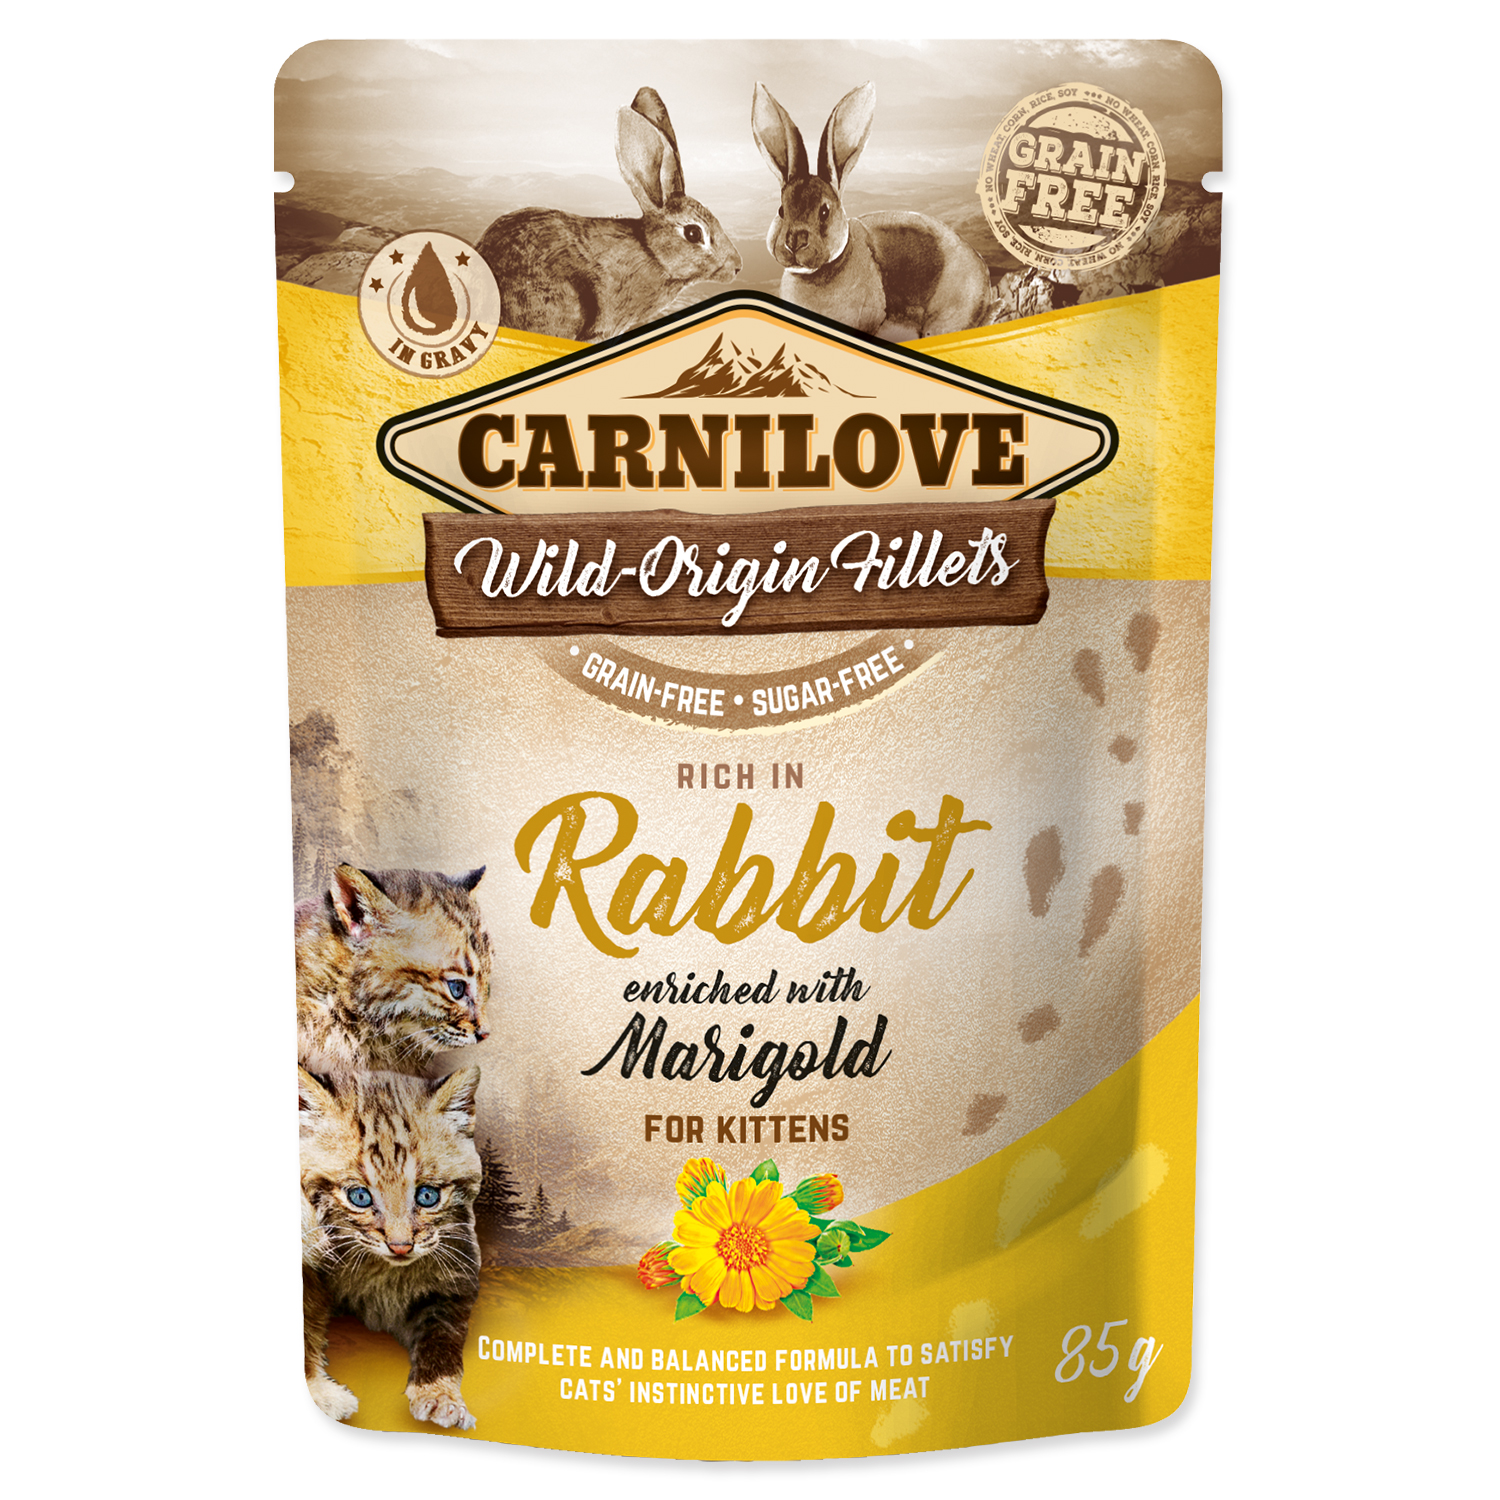 Kapsička CARNILOVE Kitten Rich in Rabbit enriched with Marigold 85g